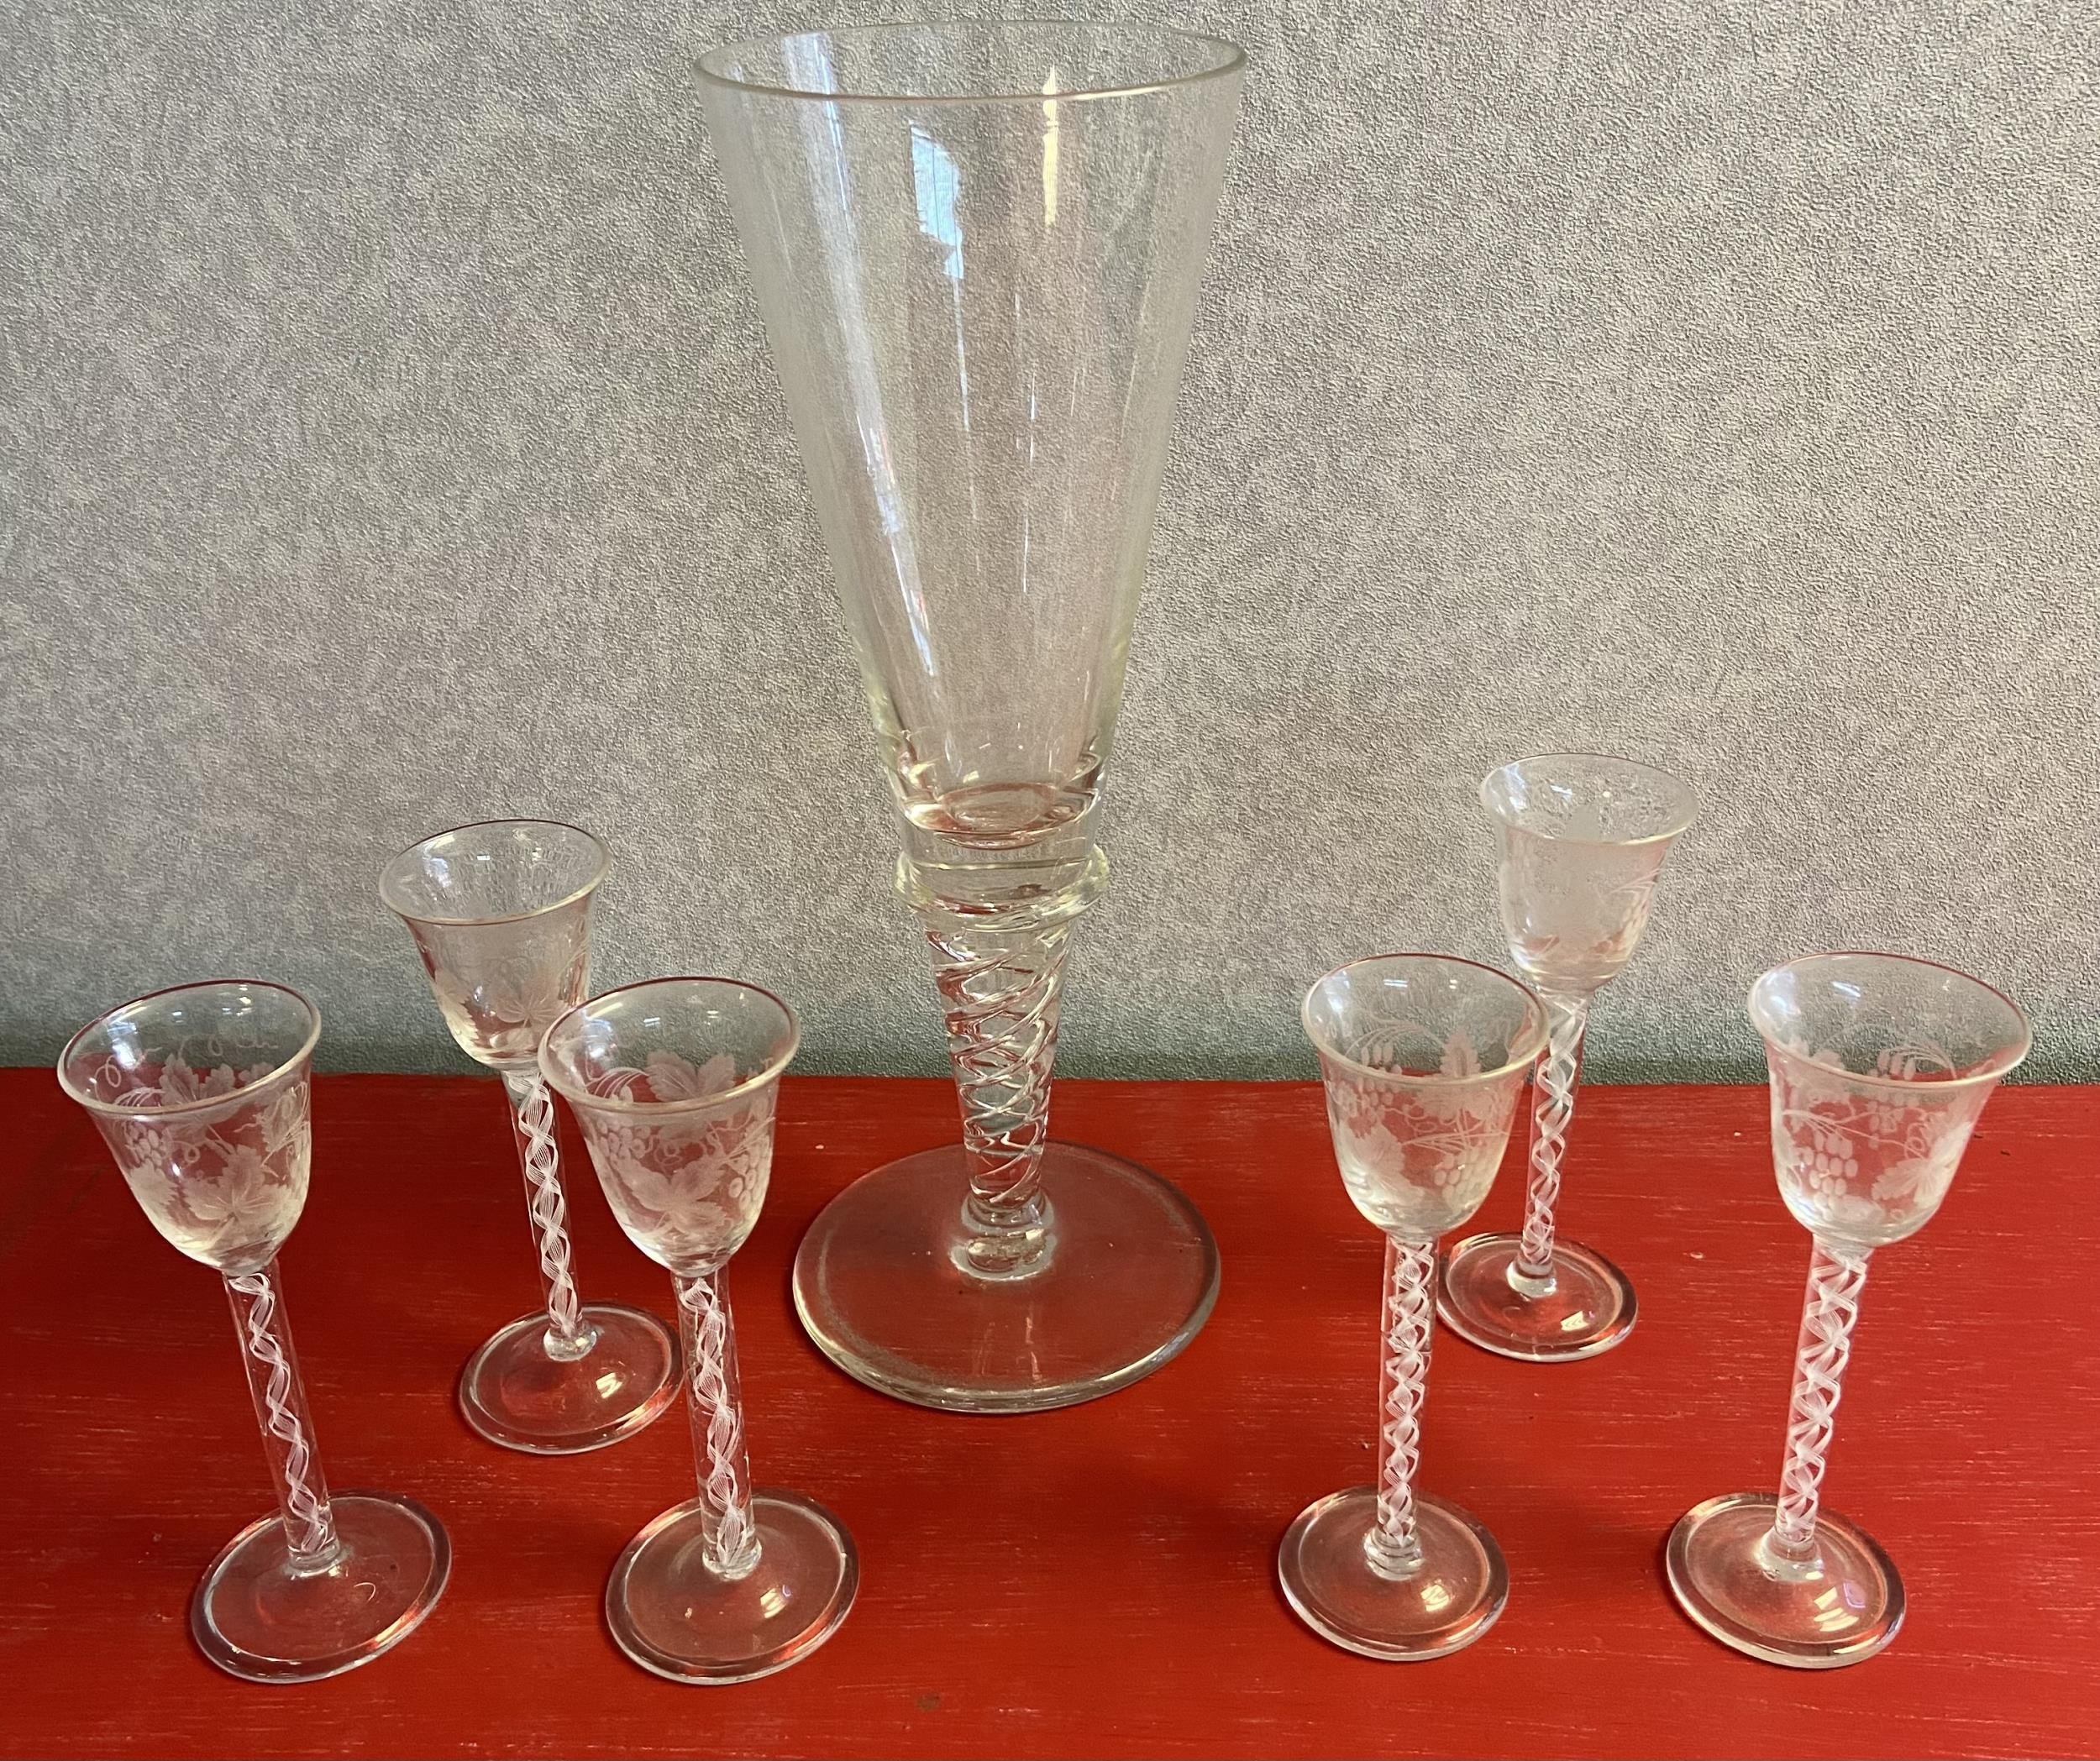 A Set of 6 twist stem free blown sherry glasses, etched with grape vines, Together with a large